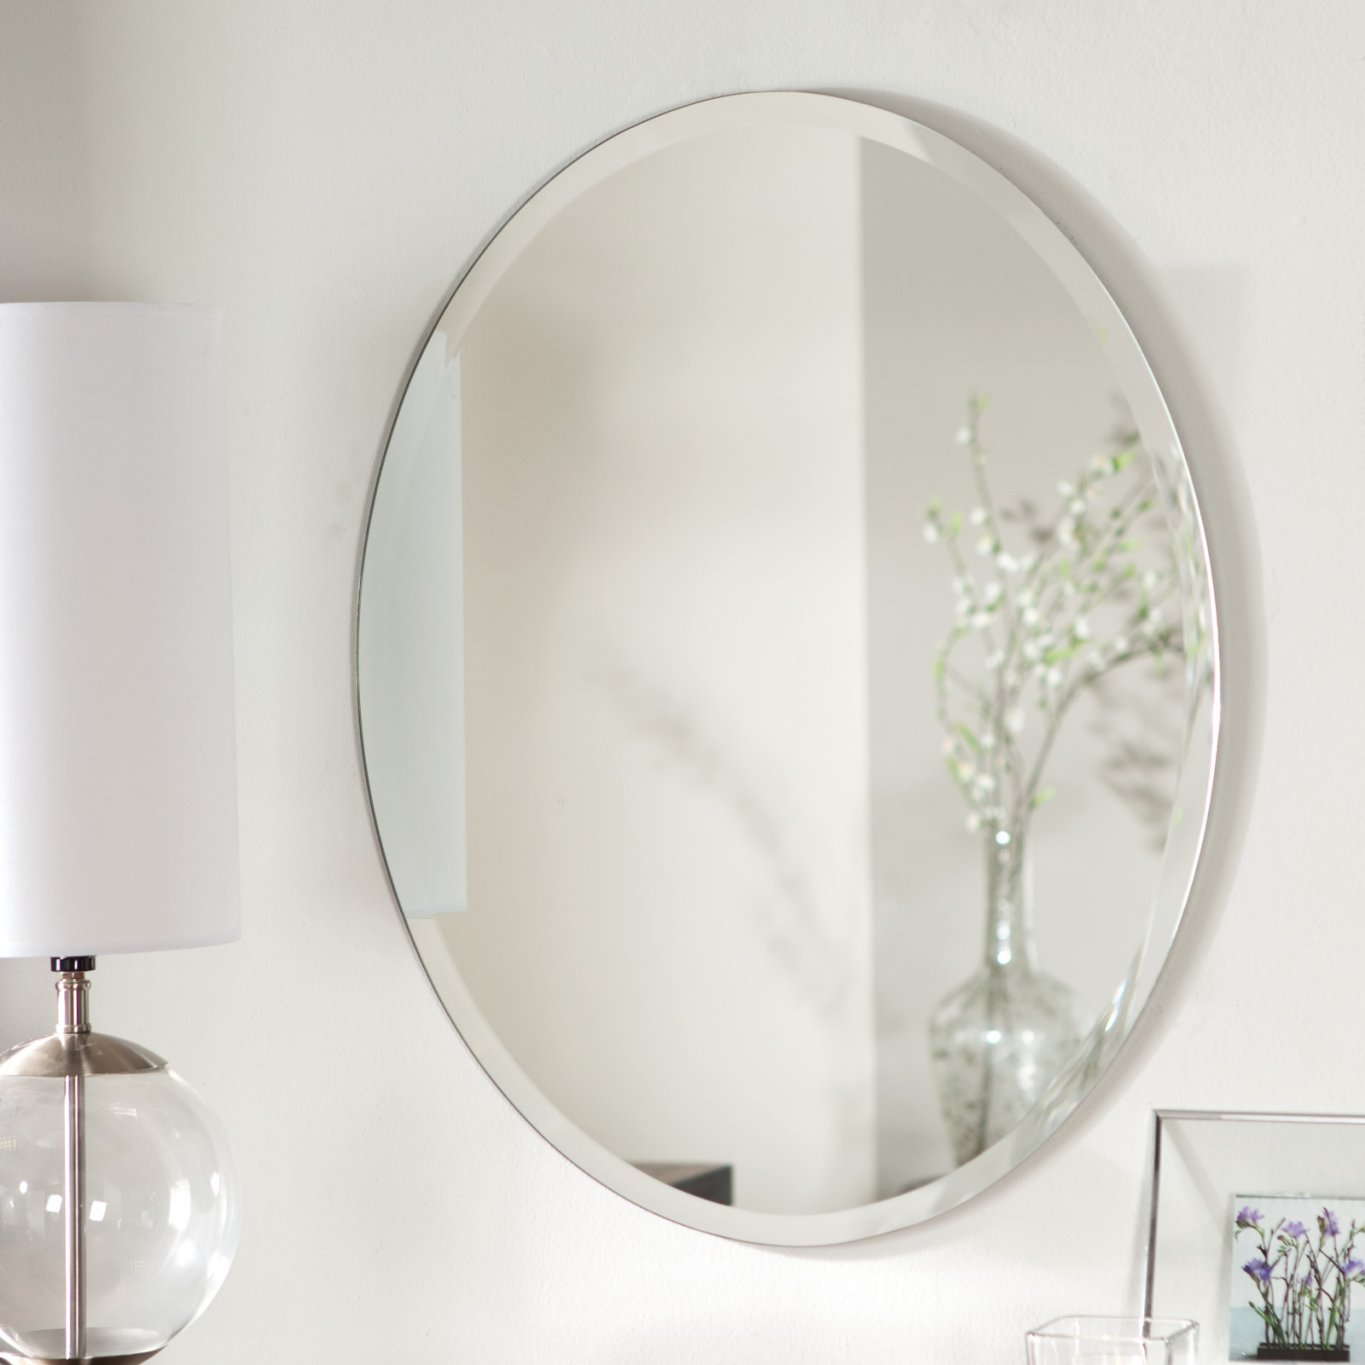 Décor Wonderland Odelia Oval Bevel Frameless Wall Mirror 22 Inx28 In